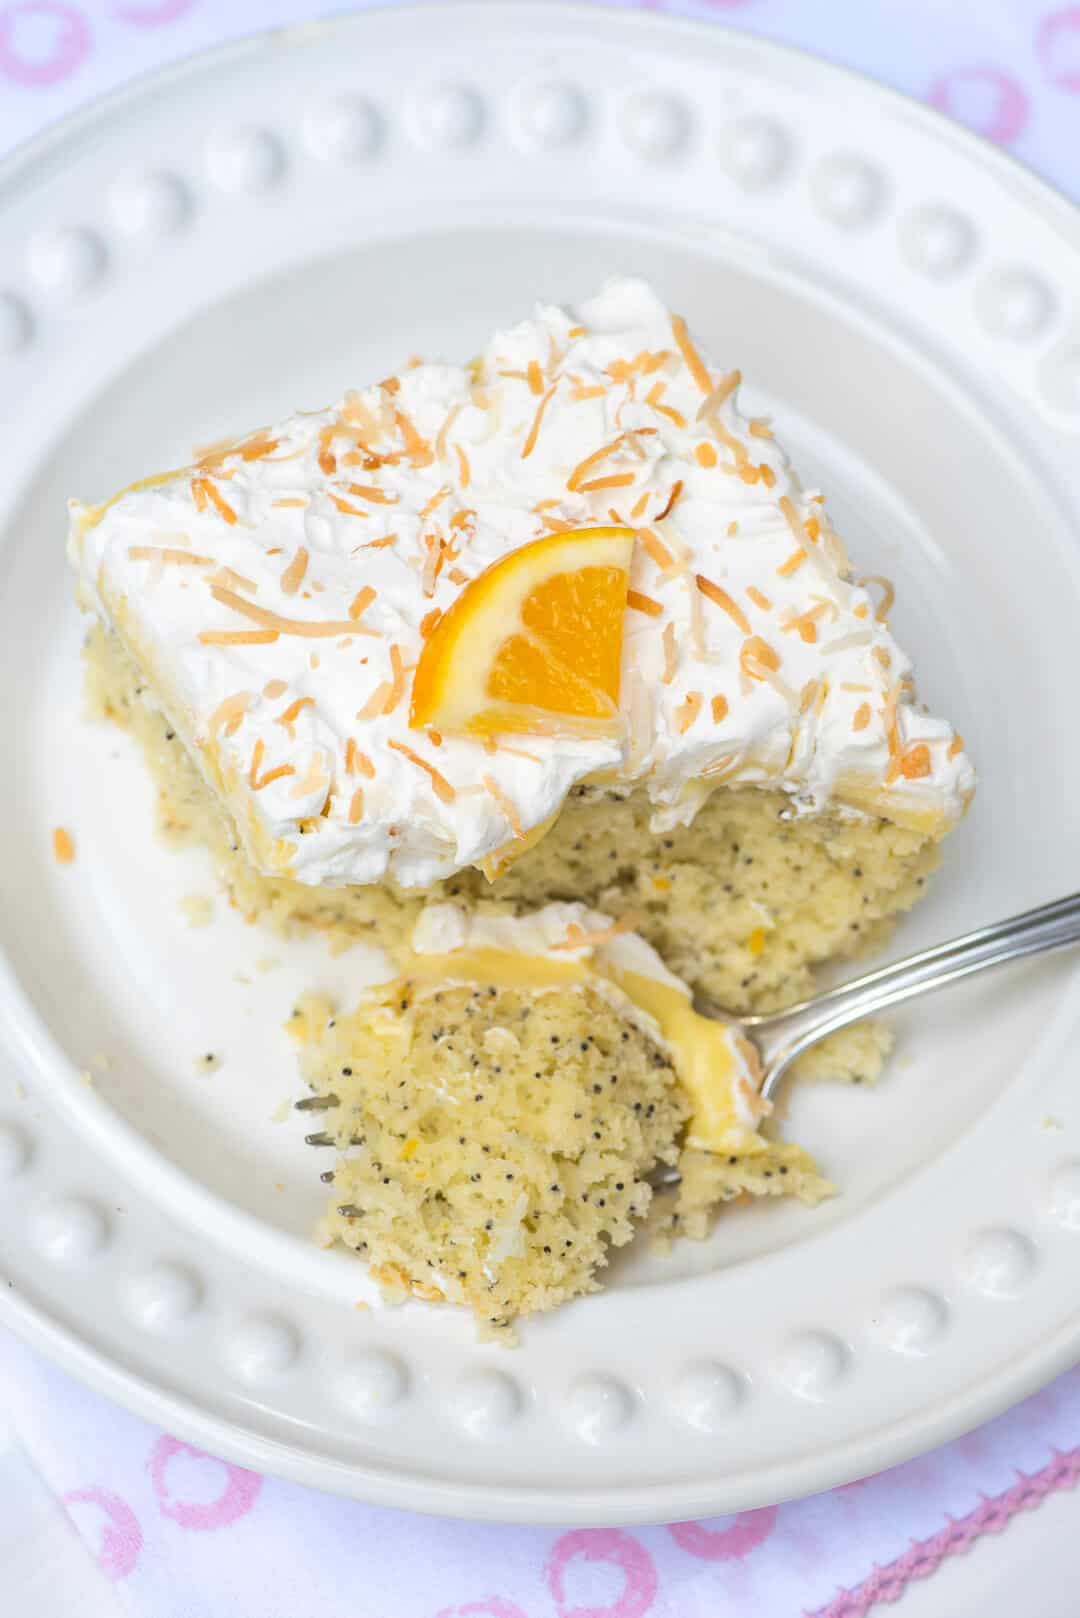 Lemon Coconut Poppy Seed Cake is a light, delicious choice that is perfect for any spring or summer gathering. This easy cake mix recipe is a fabulous, no-fuss dessert option.